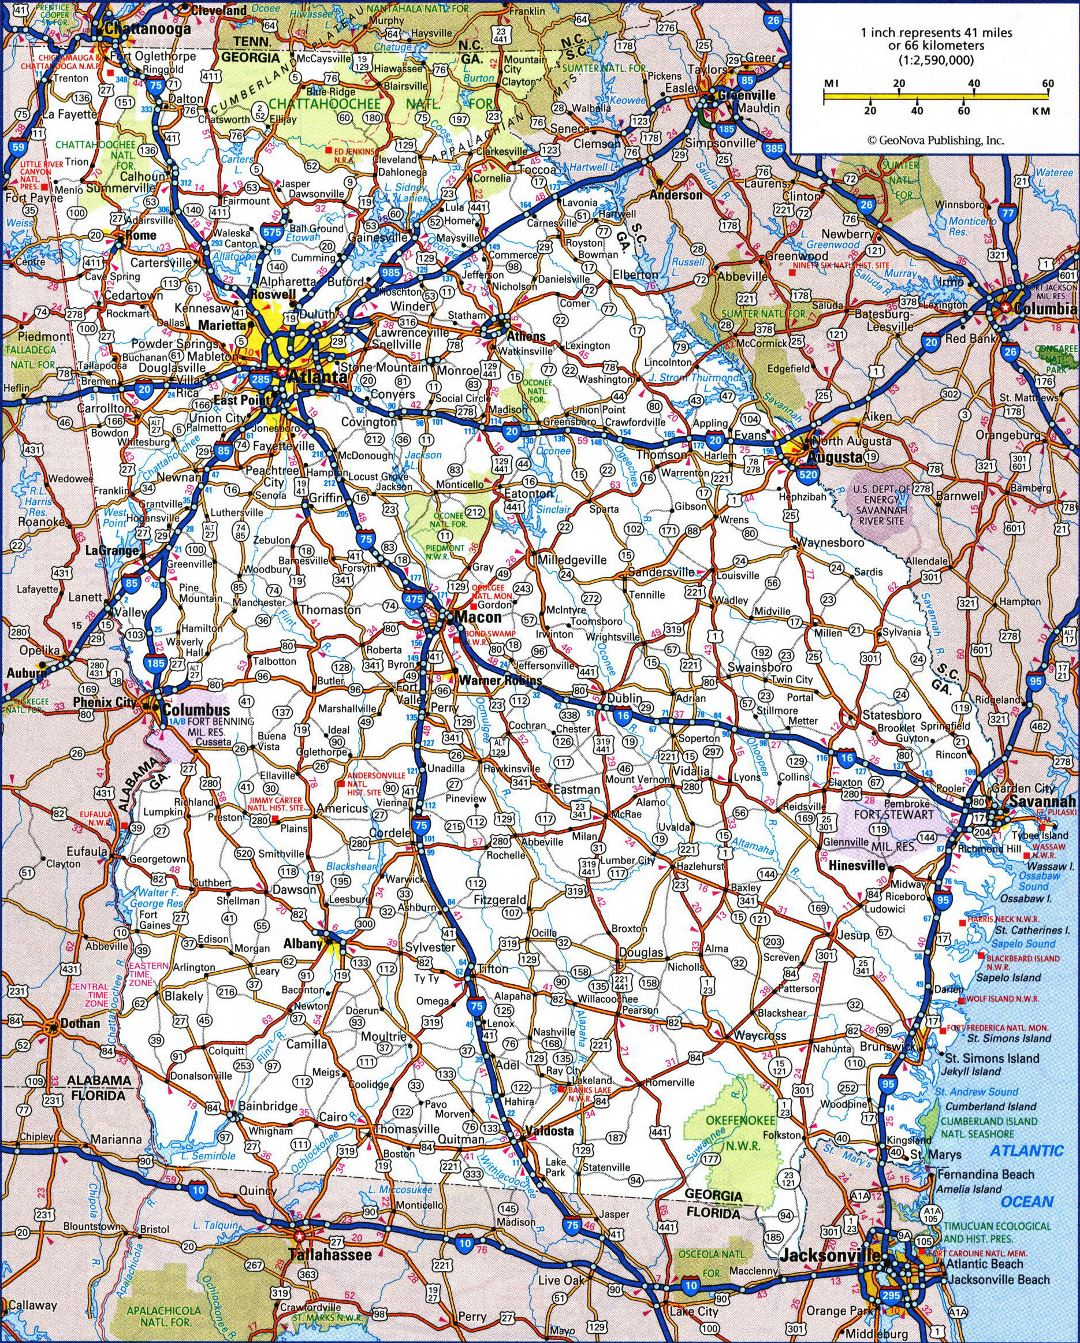 Large detailed roads and highways map of Georgia state with all cities and national parks